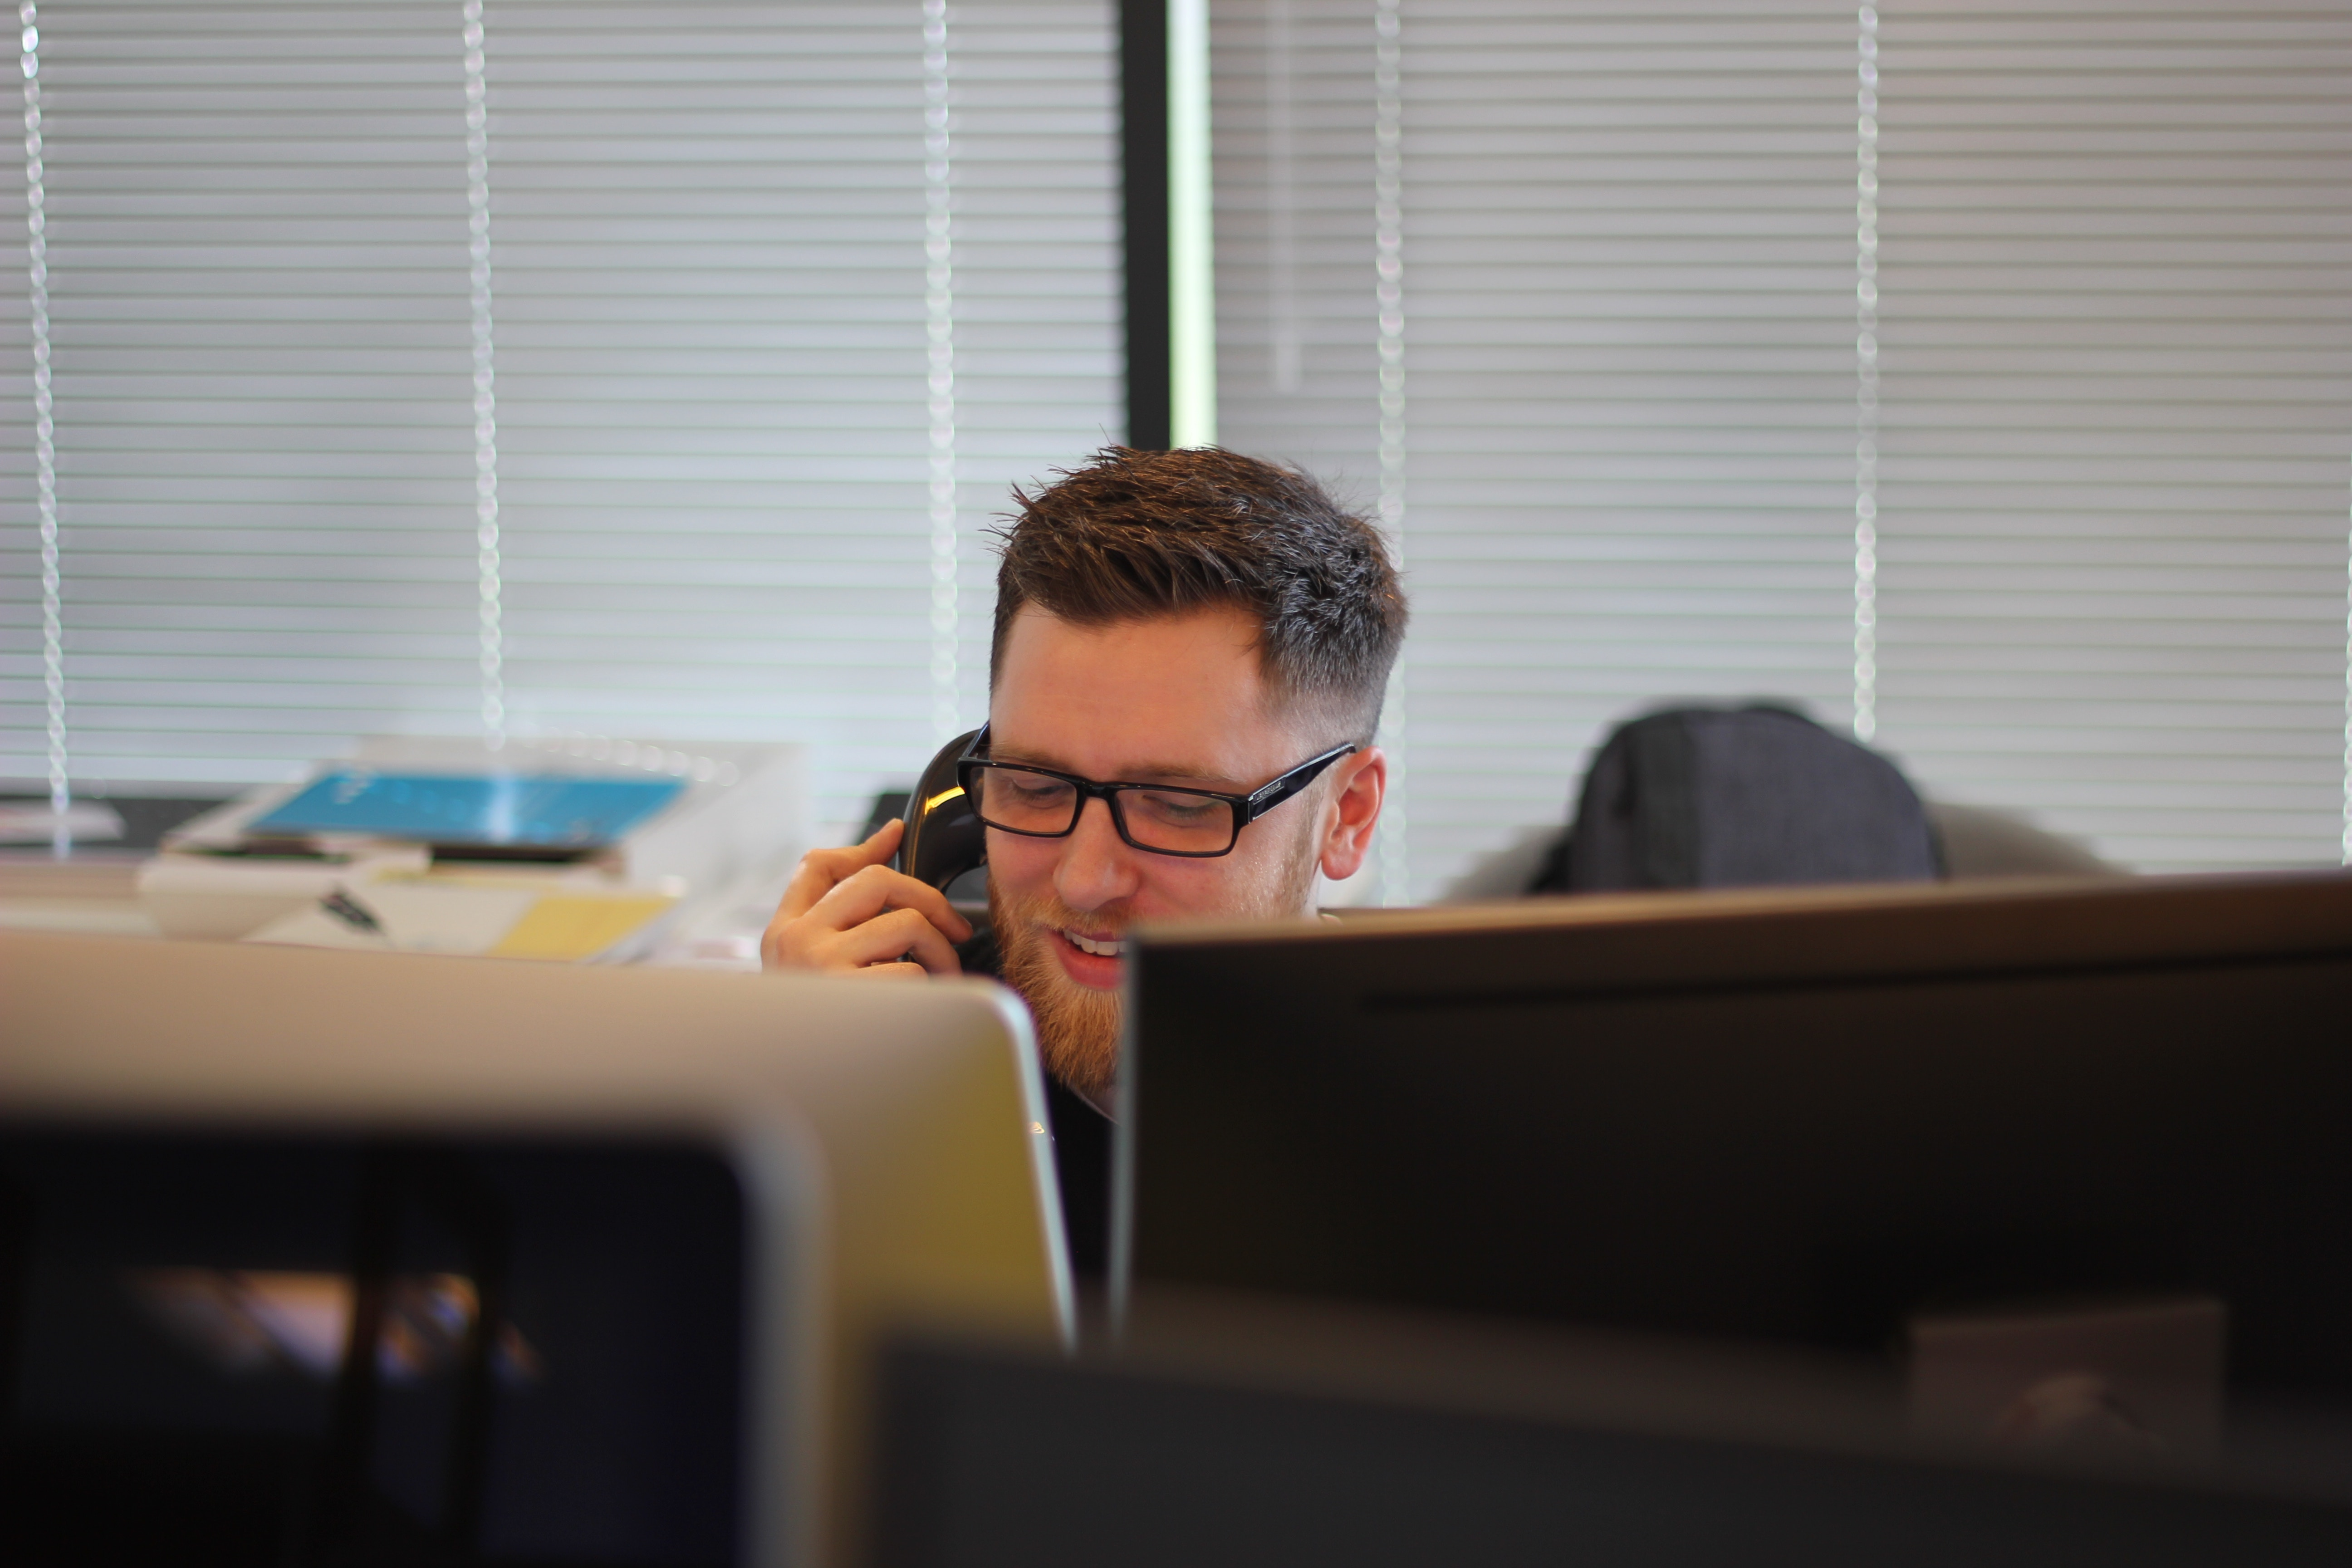 IT professional talking on the phone